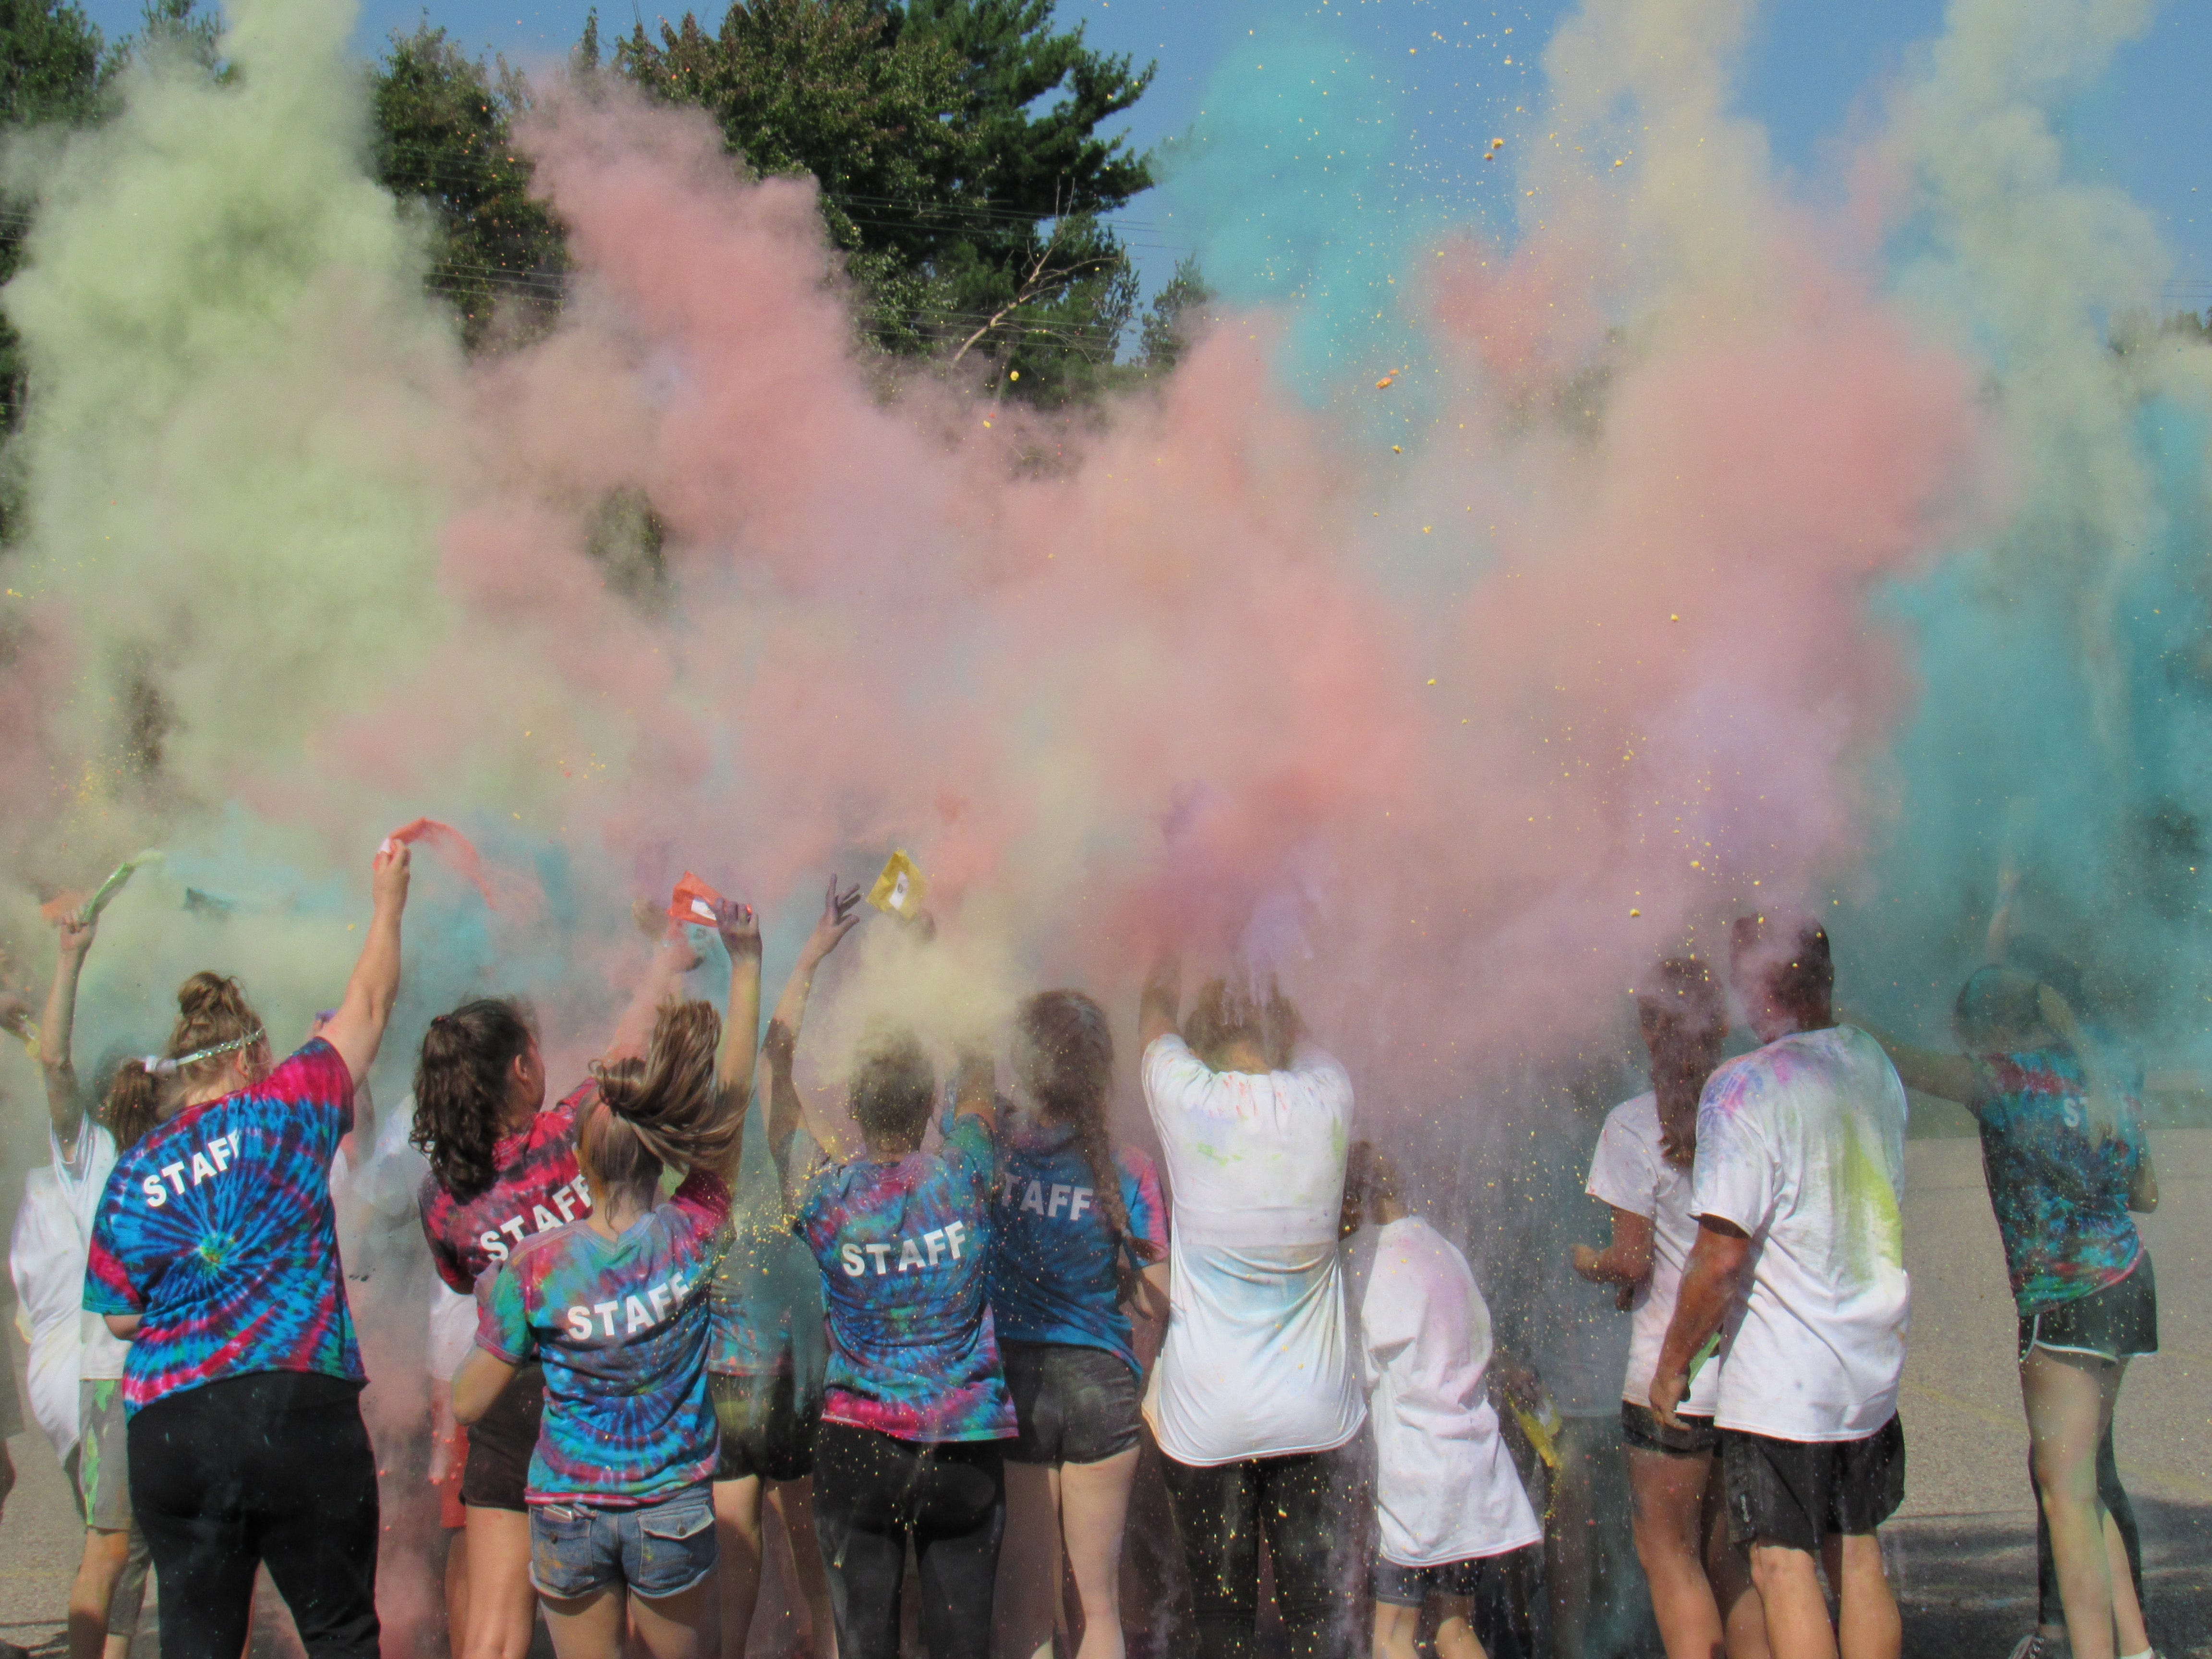 Participants toss colored cornstarch into the air at the end of the Lincoln High School Cheer & Stunt Color Run Saturday, Sept. 15, 2018, in Wisconsin Rapids.